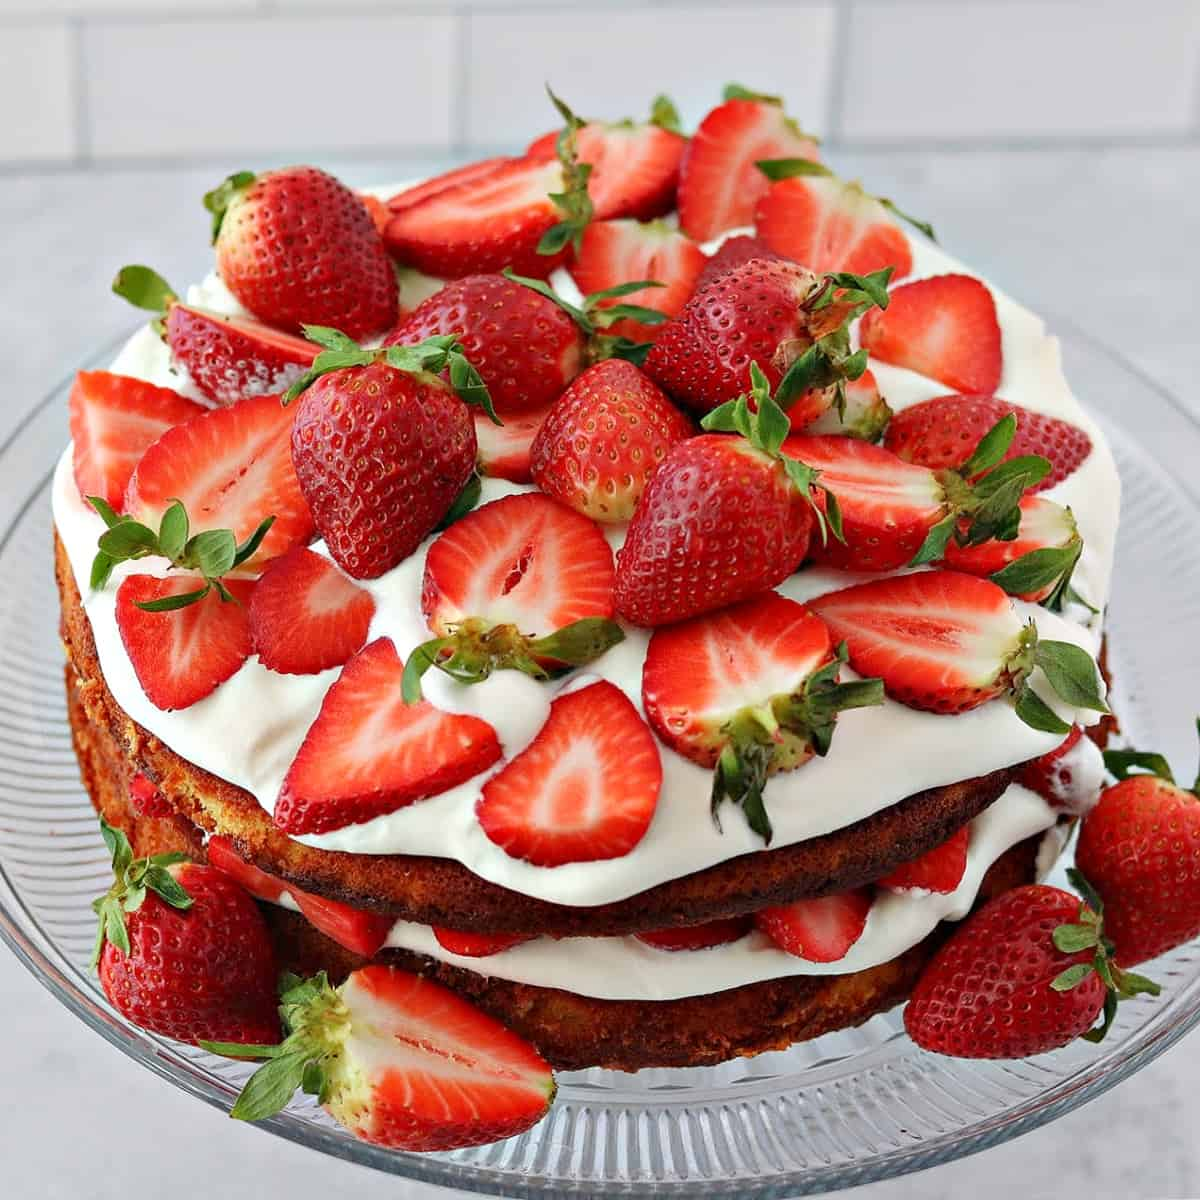 double layer low carb strawberry shortcake on a cake stand